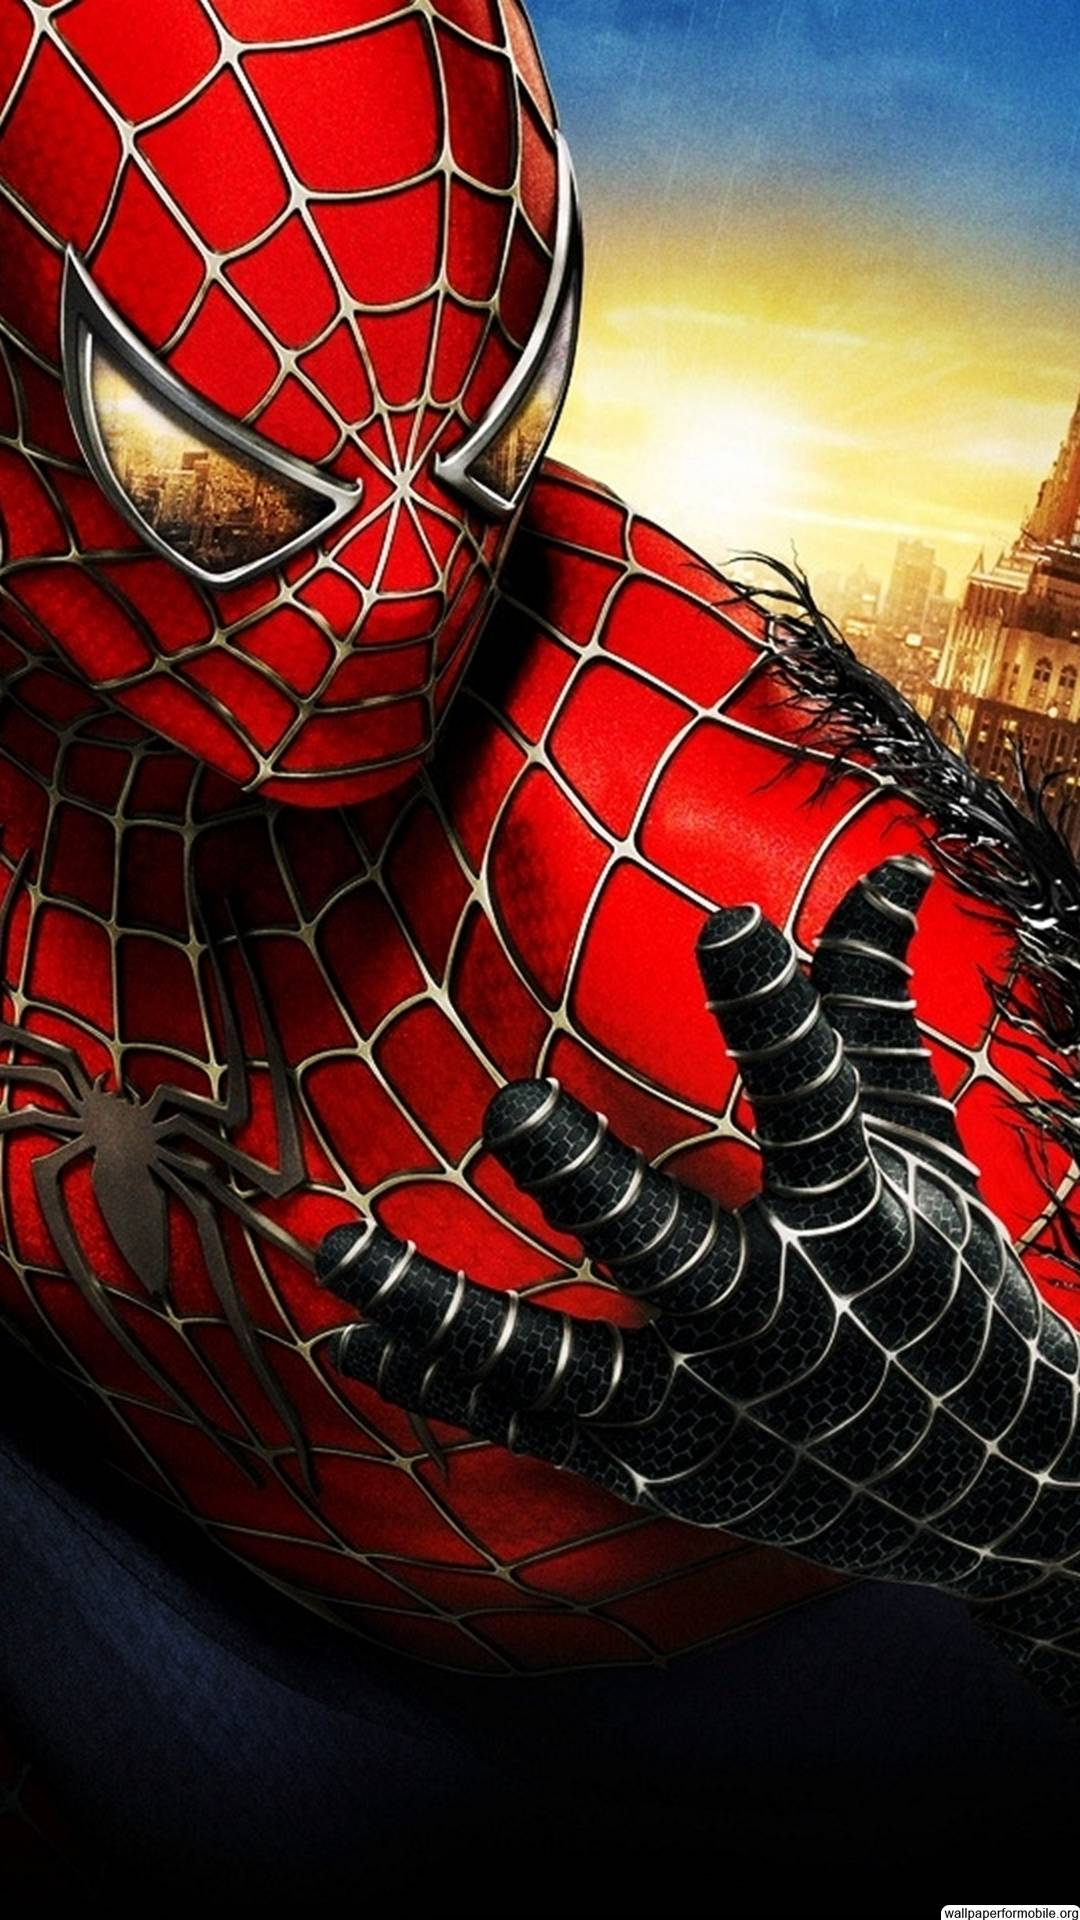 Spiderman Wallpaper Hd Posted By Samantha Peltier